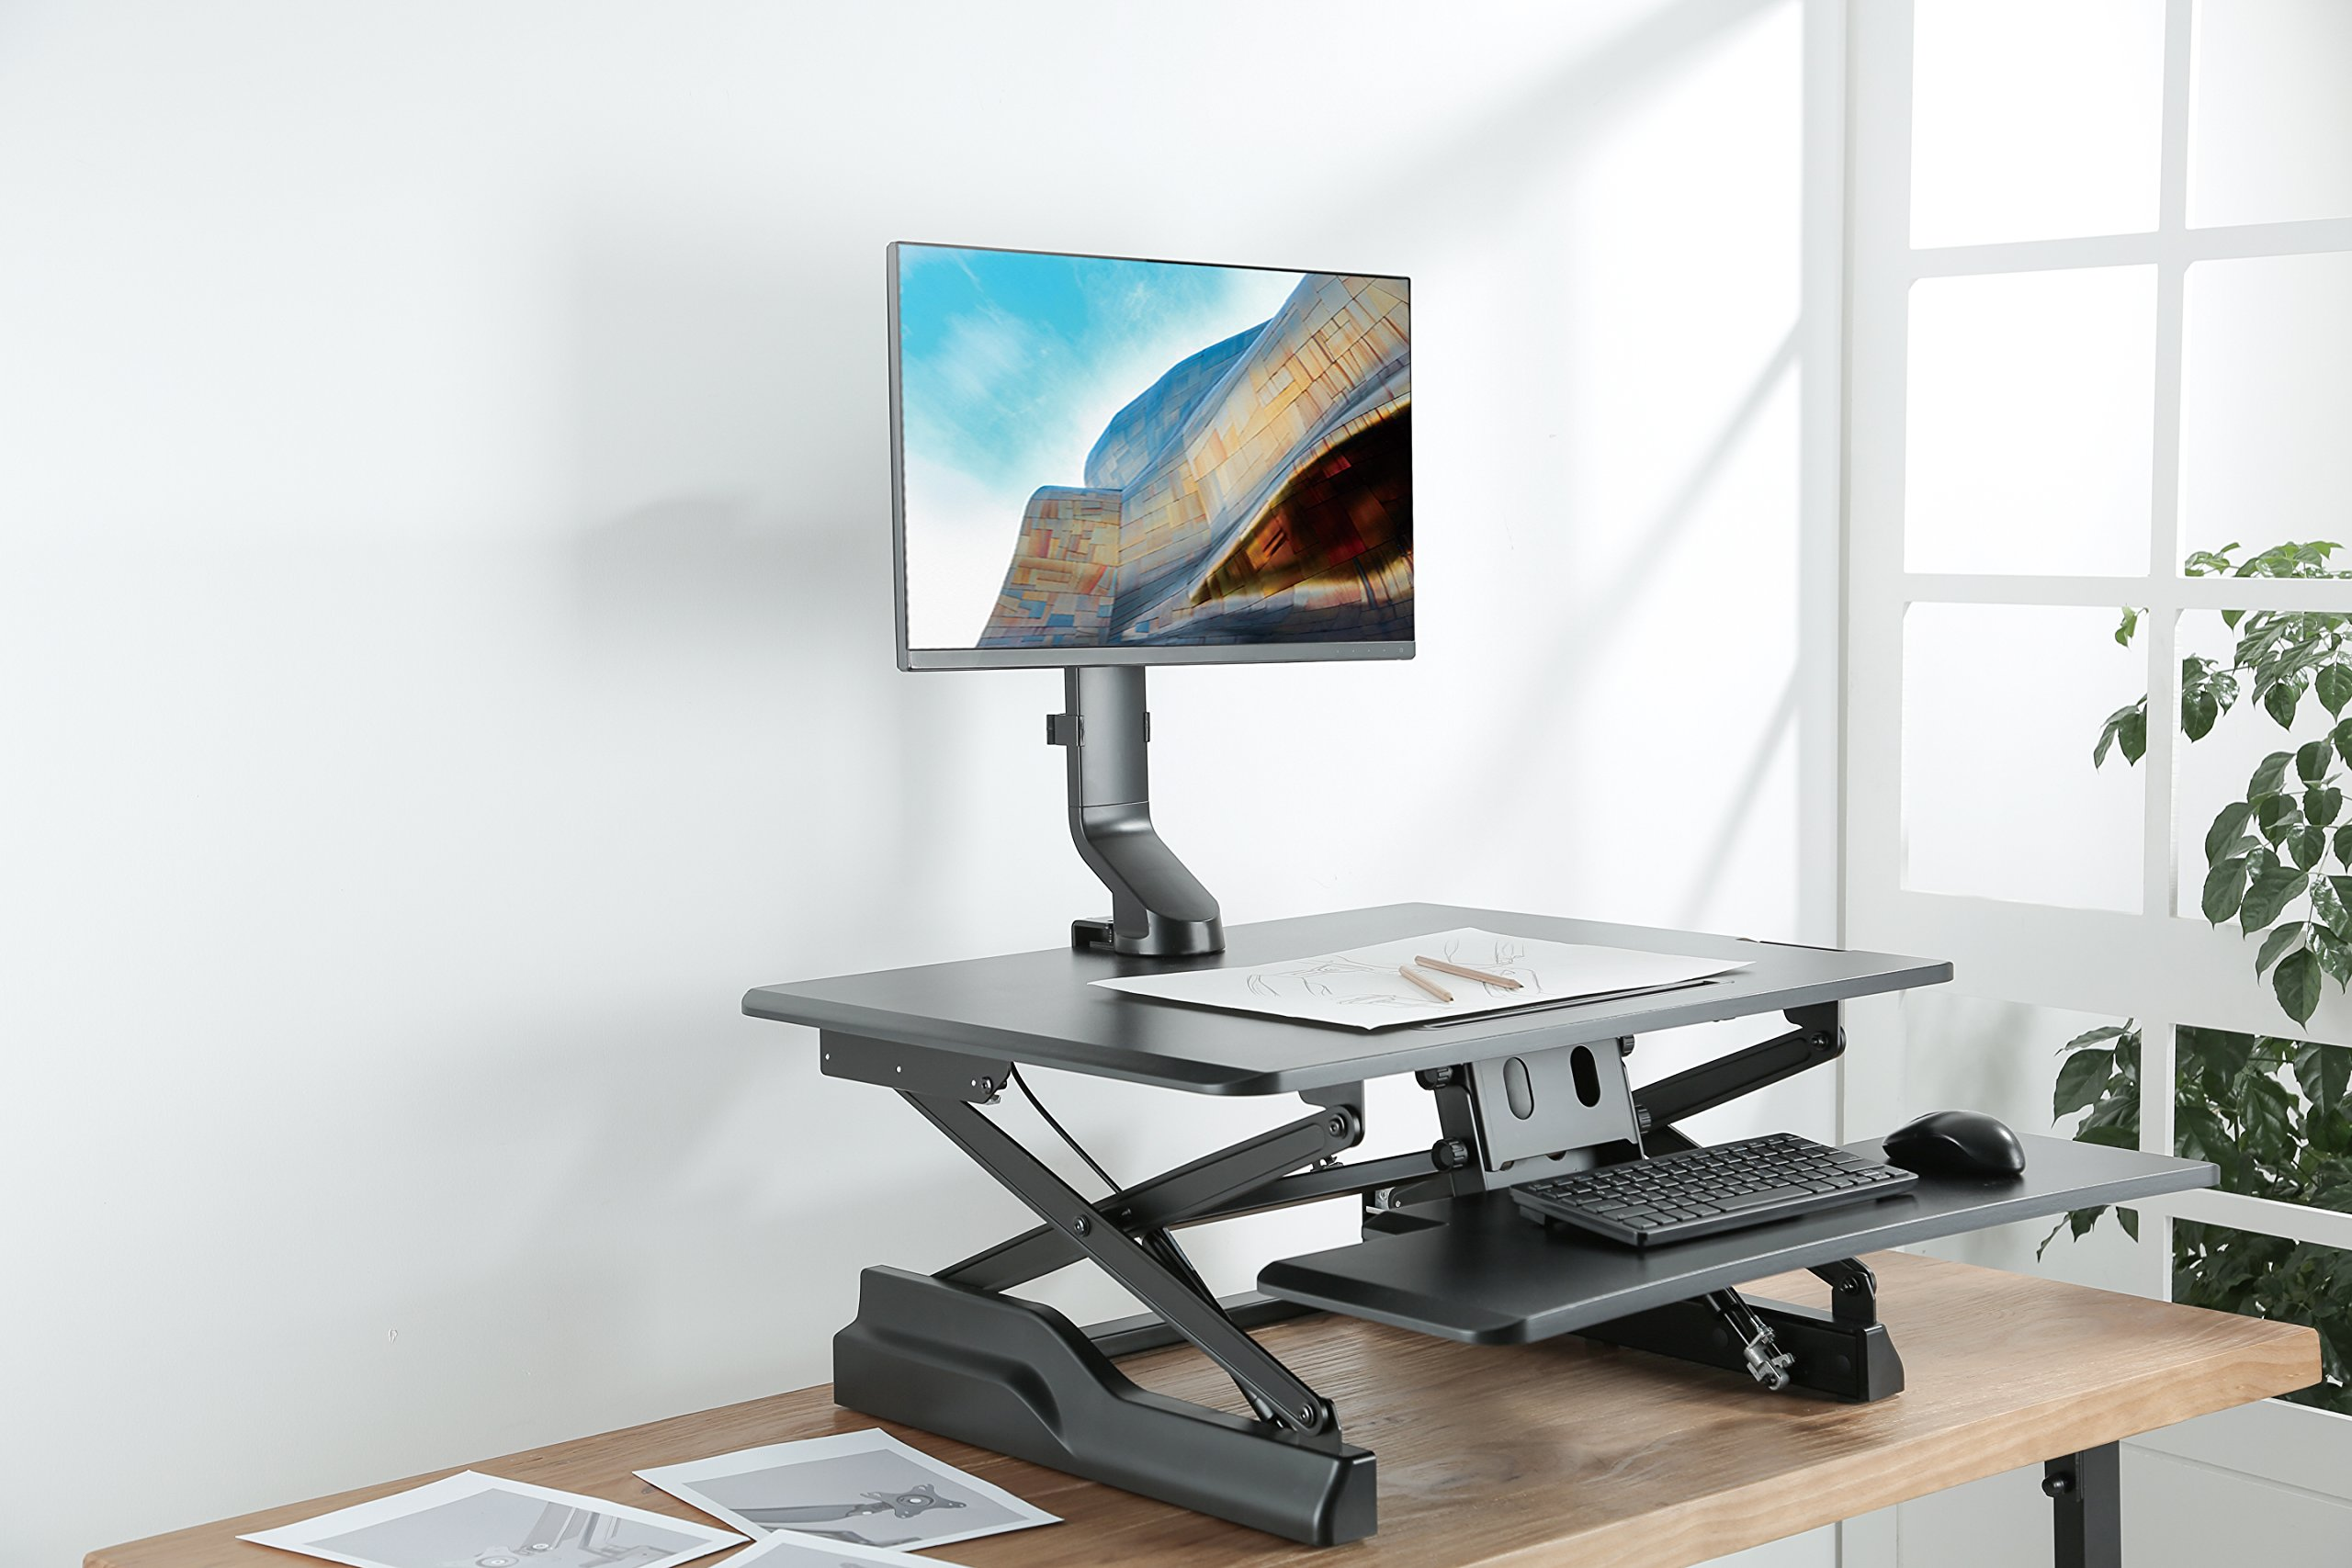 AVLT-Power Single Monitor Mount for Standing Desk Workstation - Extra Height Adjustment Range - Heavy Duty - Holds 17'' to 32'' Screens, up to 17.6 lbs, VESA 75x75mm 100x100mm by AVLT-Power (Image #5)